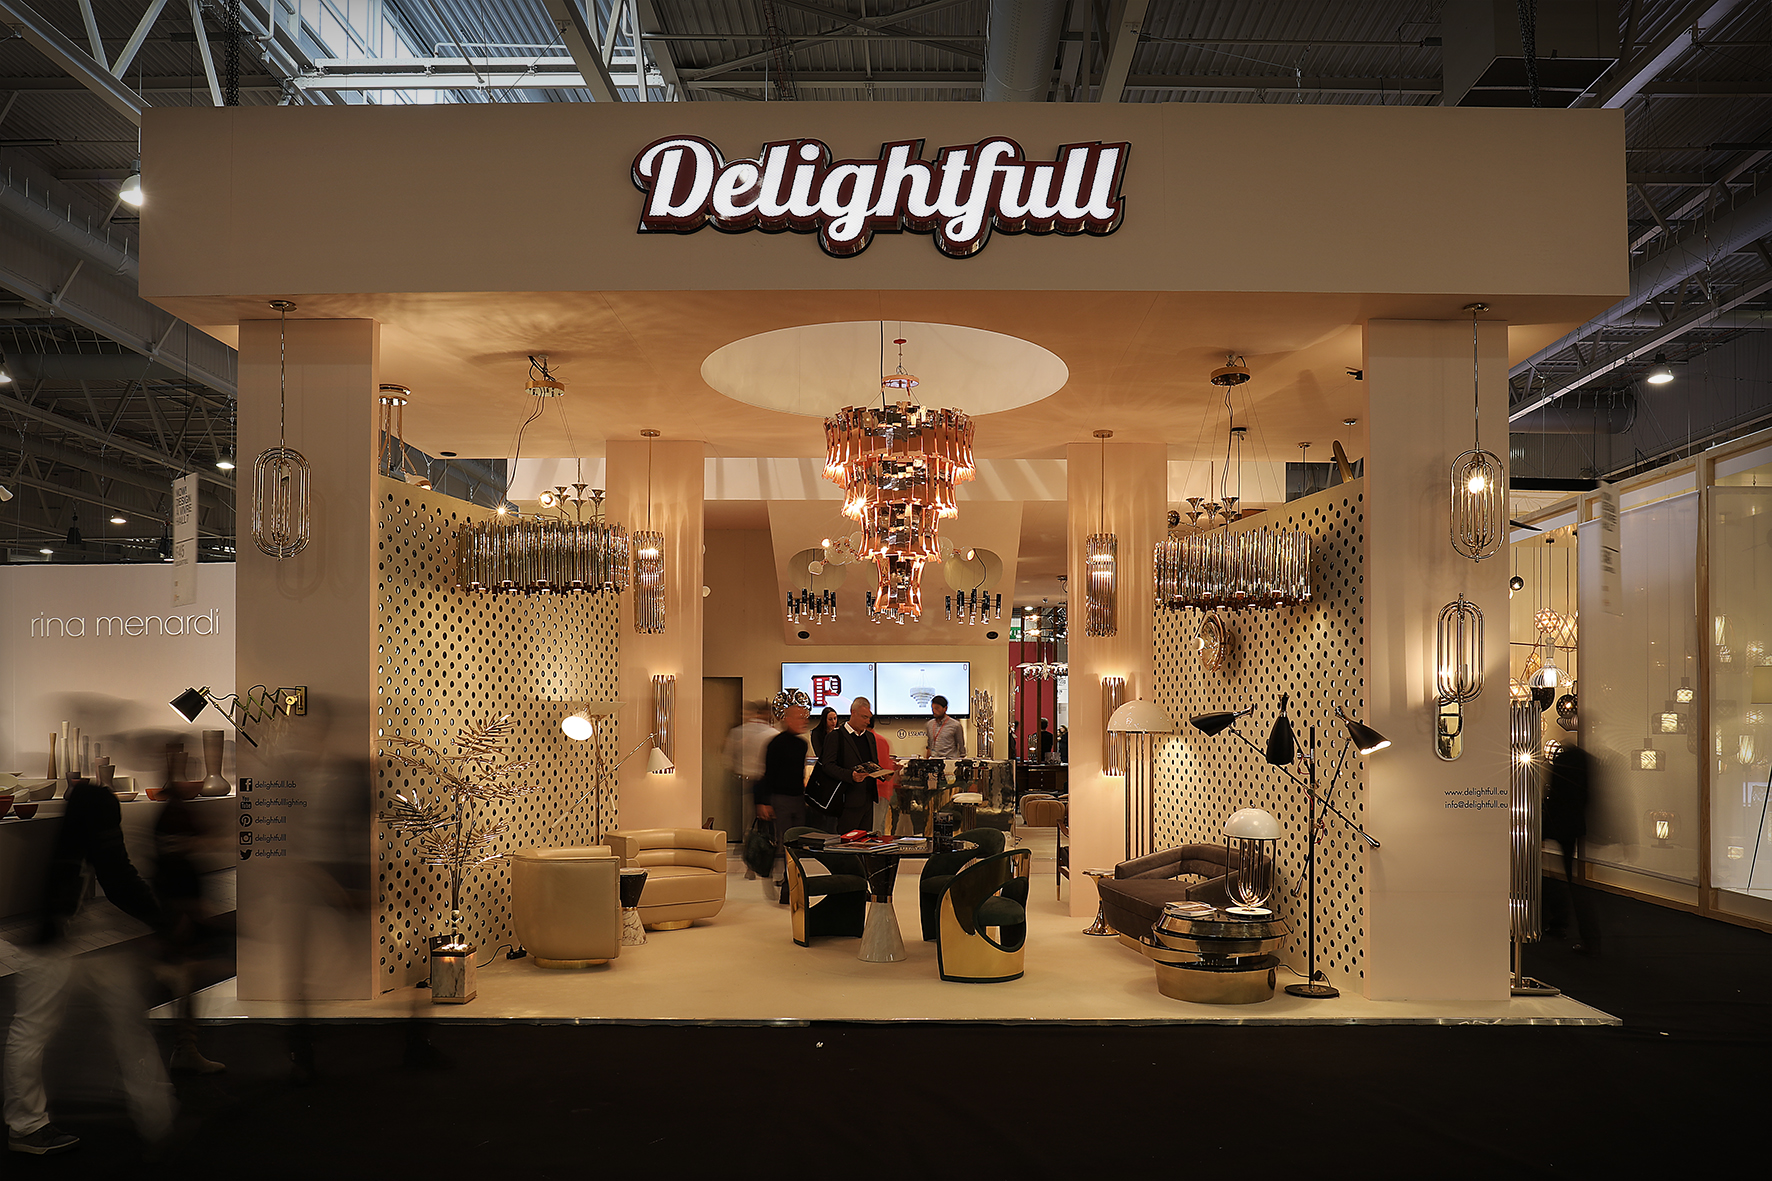 Maison et objet paris 2017 highlight of the day delightfull for Maison et objet paris 2017